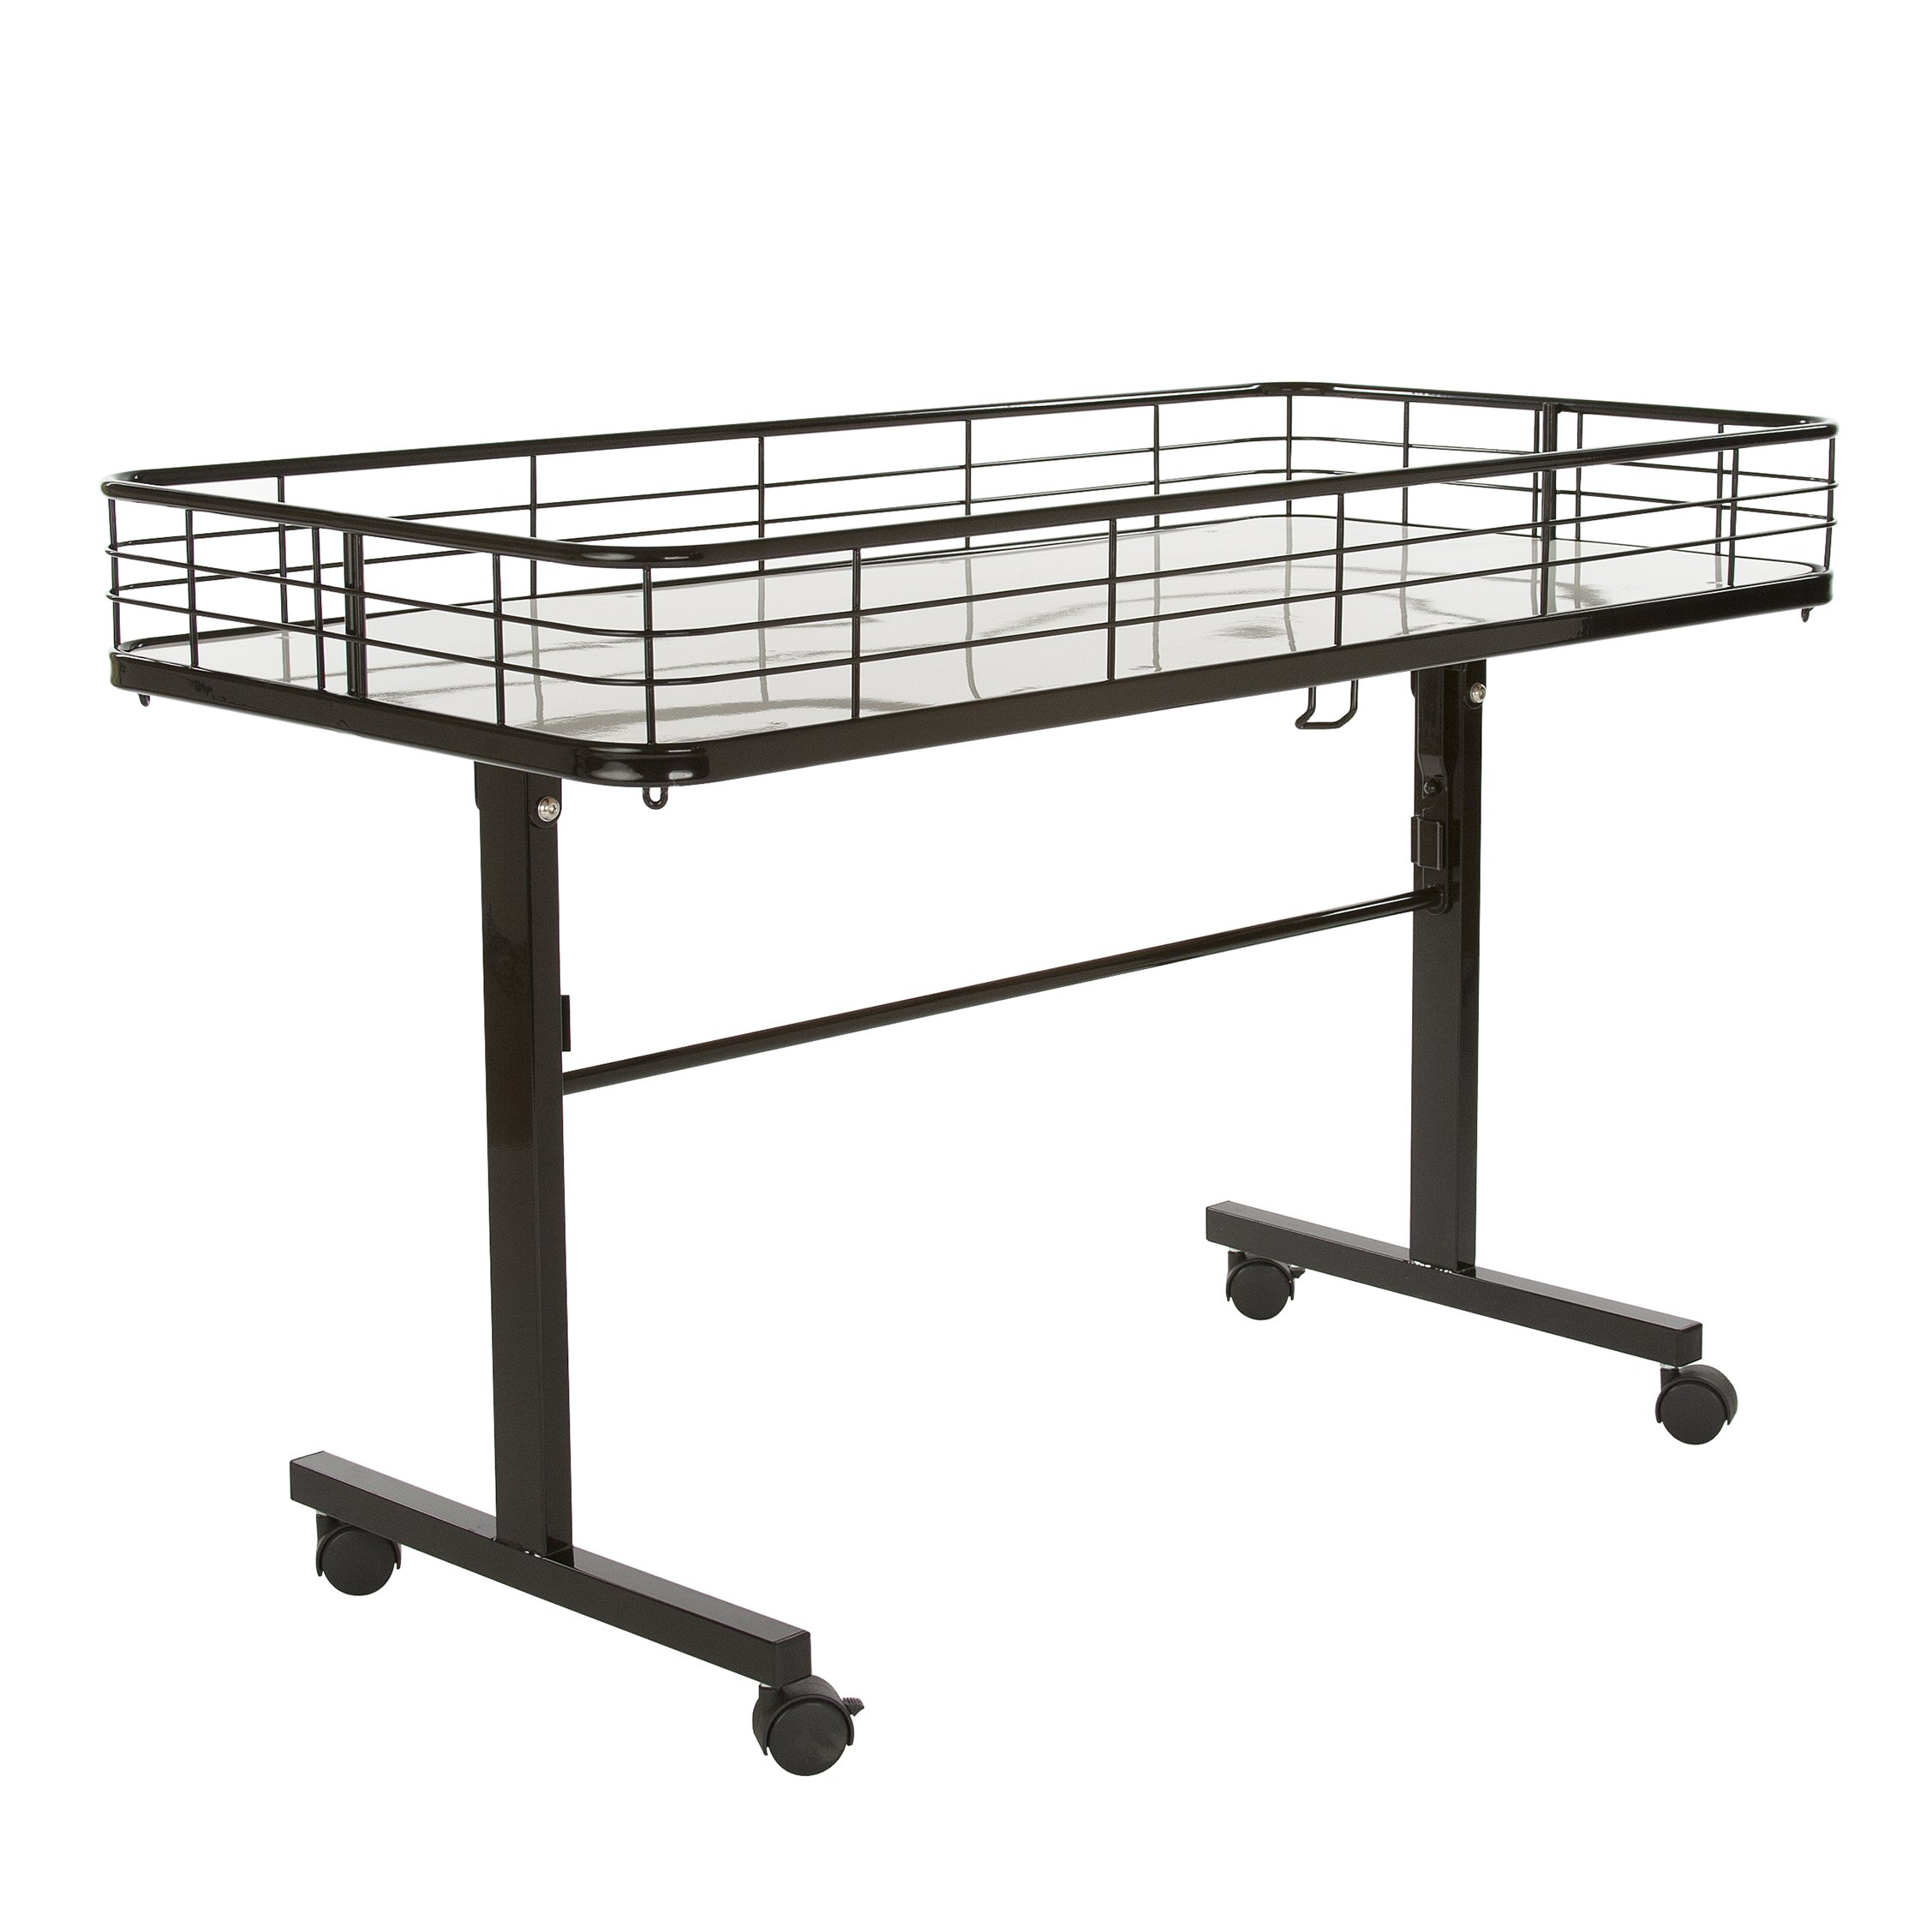 Econoco Commercial Folding Dump Table, Black